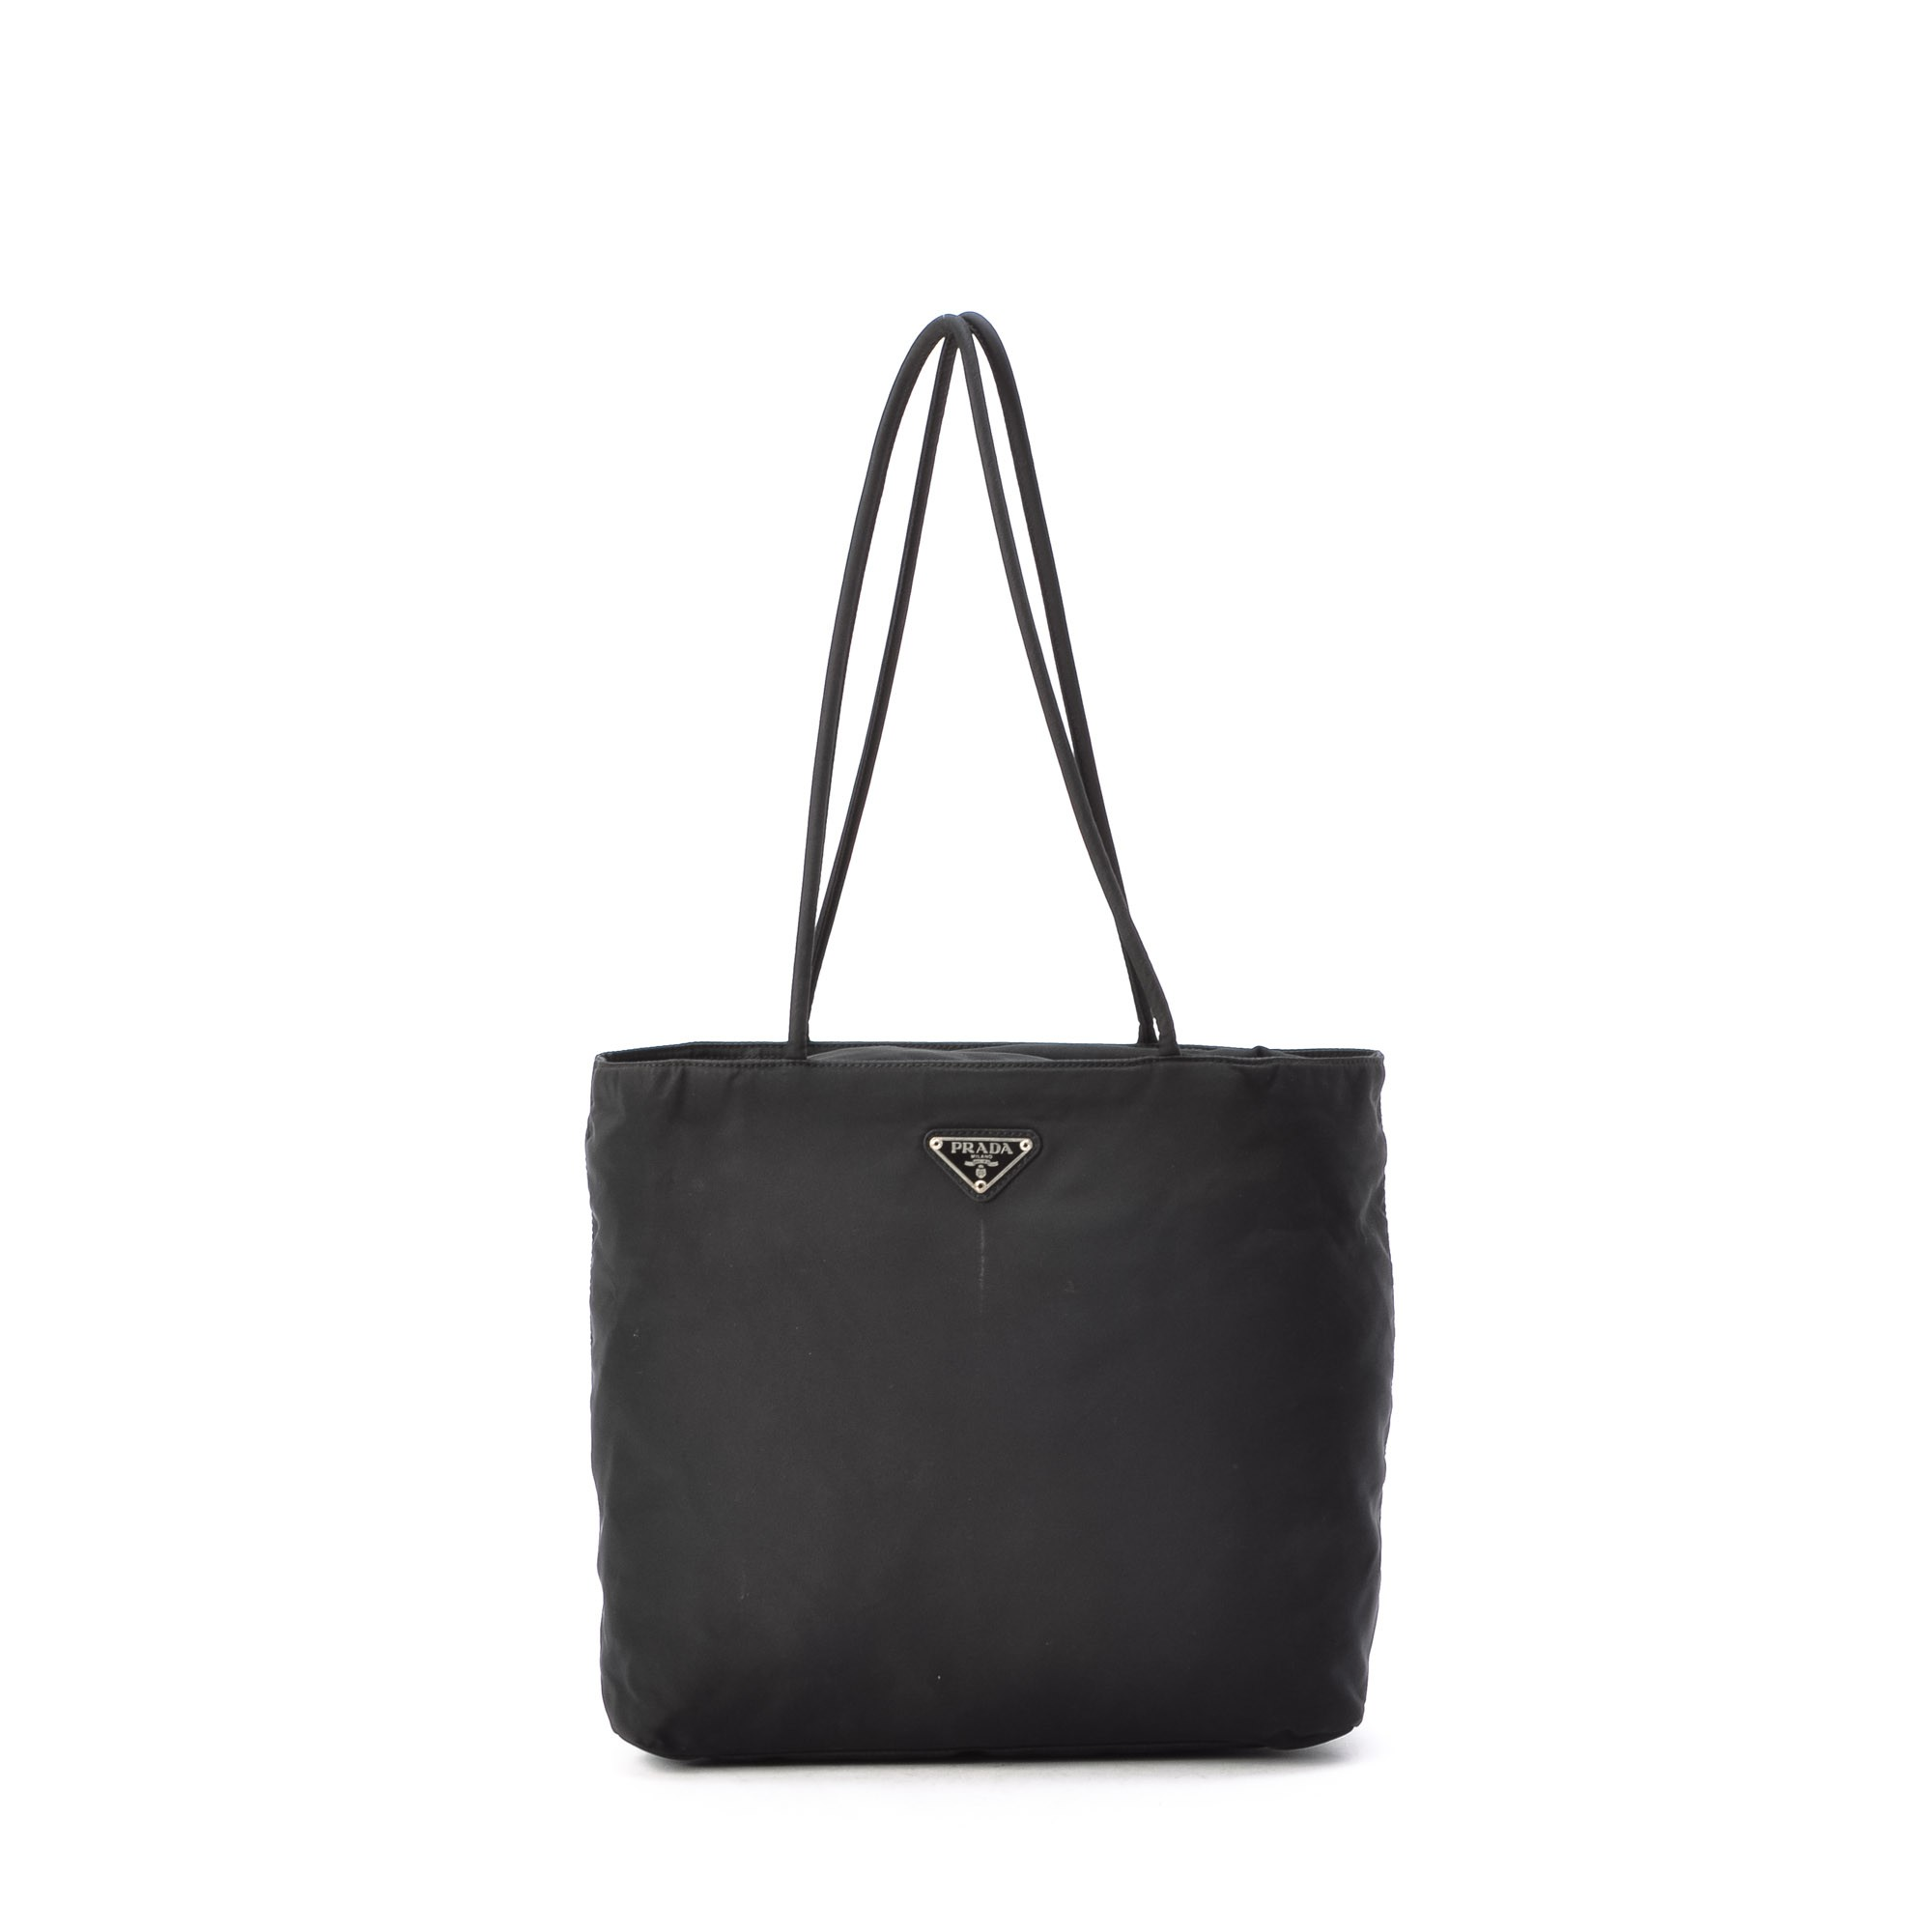 Prada Tote Bag Black Nylon Tote - LXR\u0026amp;CO Vintage Luxury